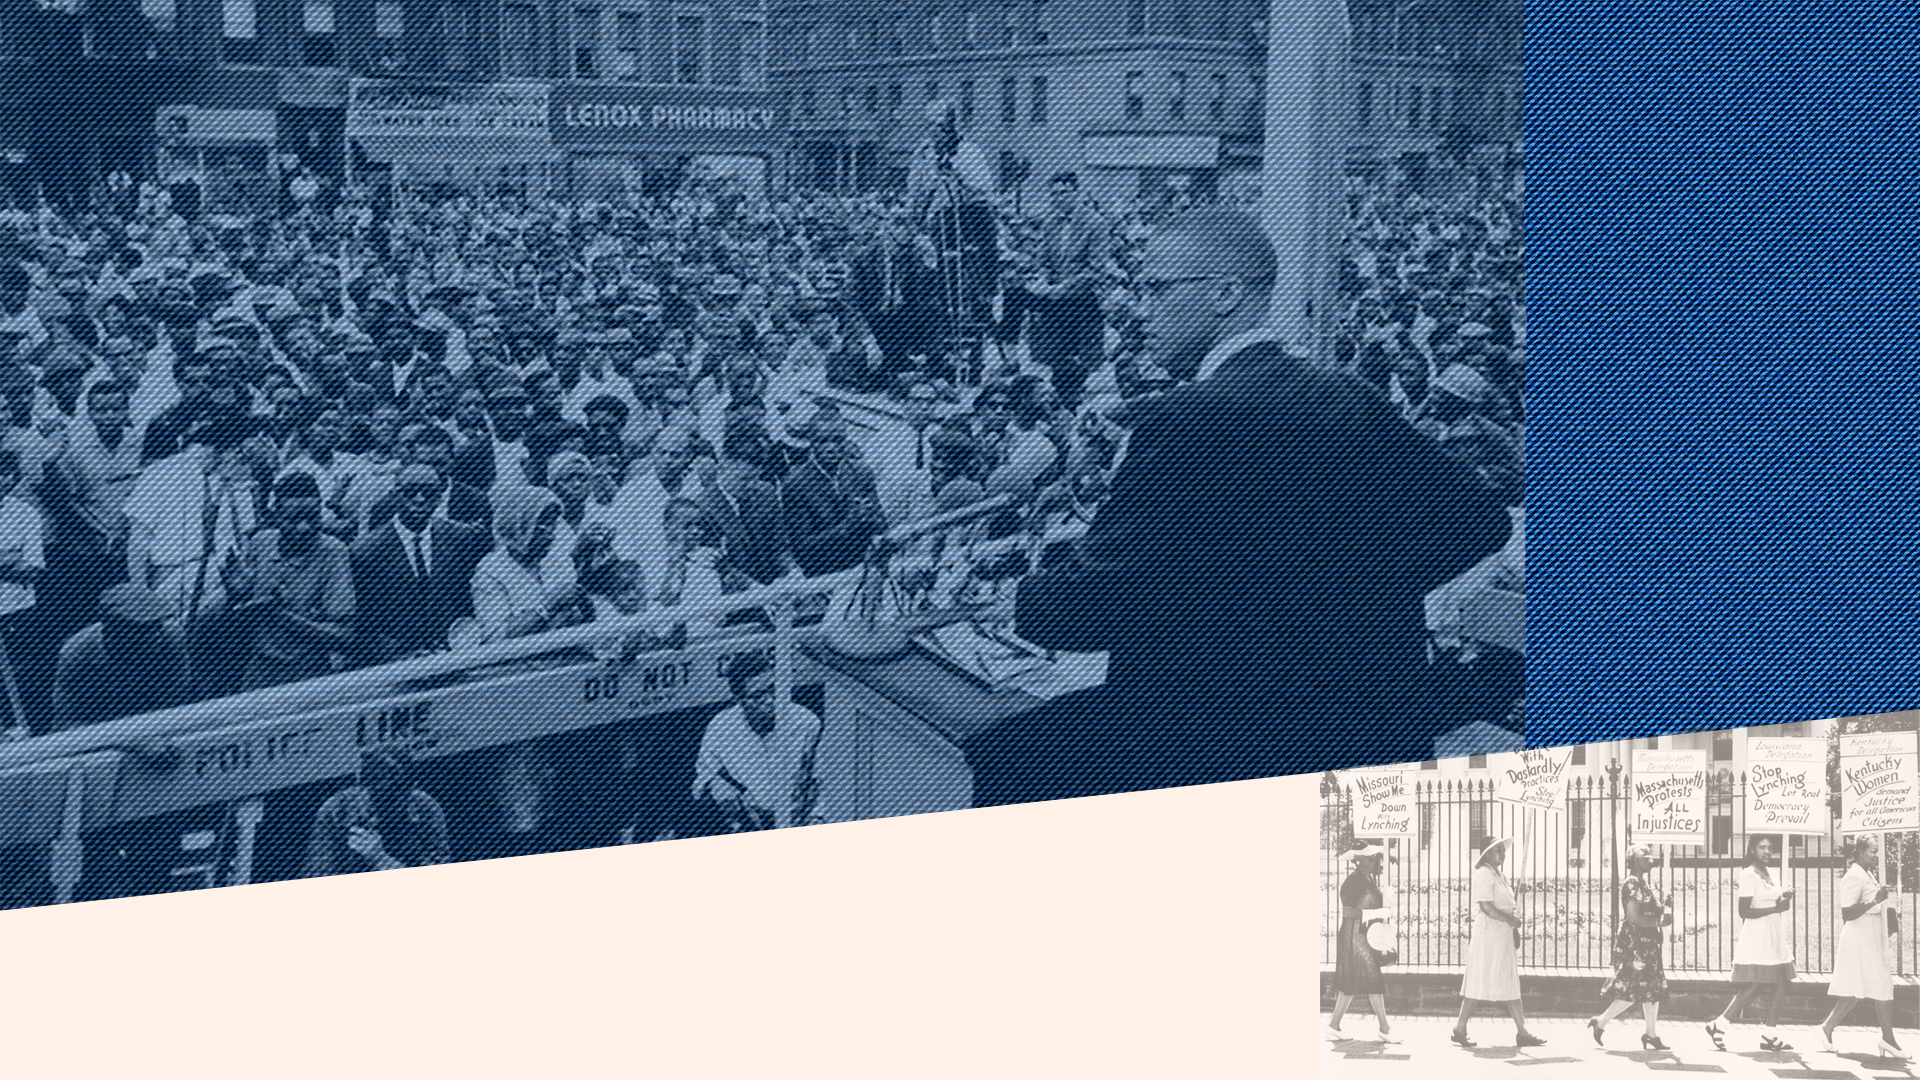 Salaams and Strategy: The Impact of Islam on American Black Civil Rights